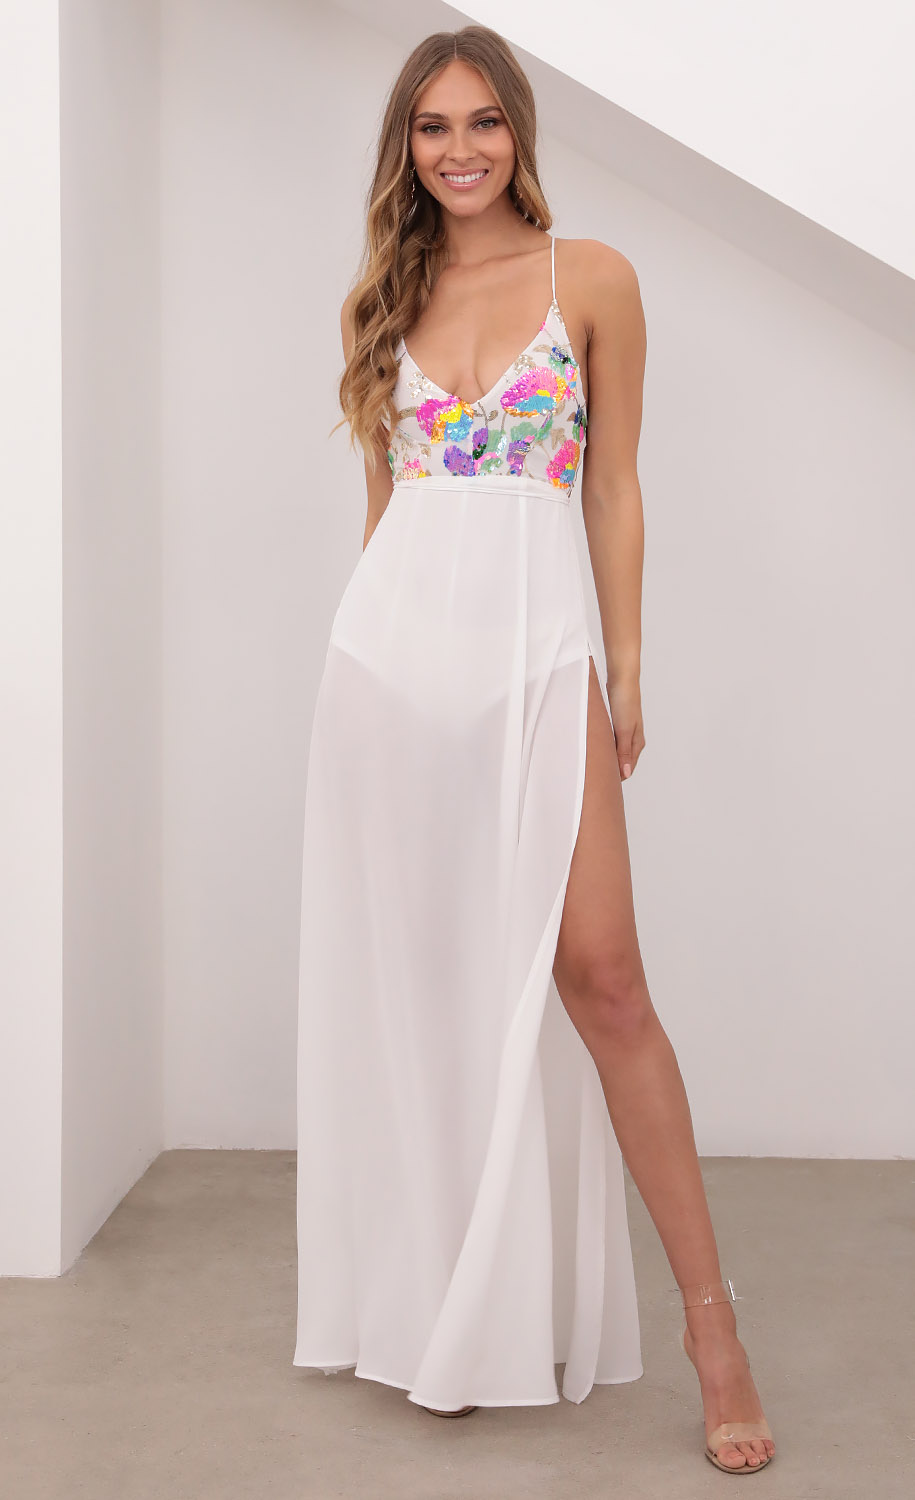 Kaylen Multicolor Sequin Maxi Dress in White